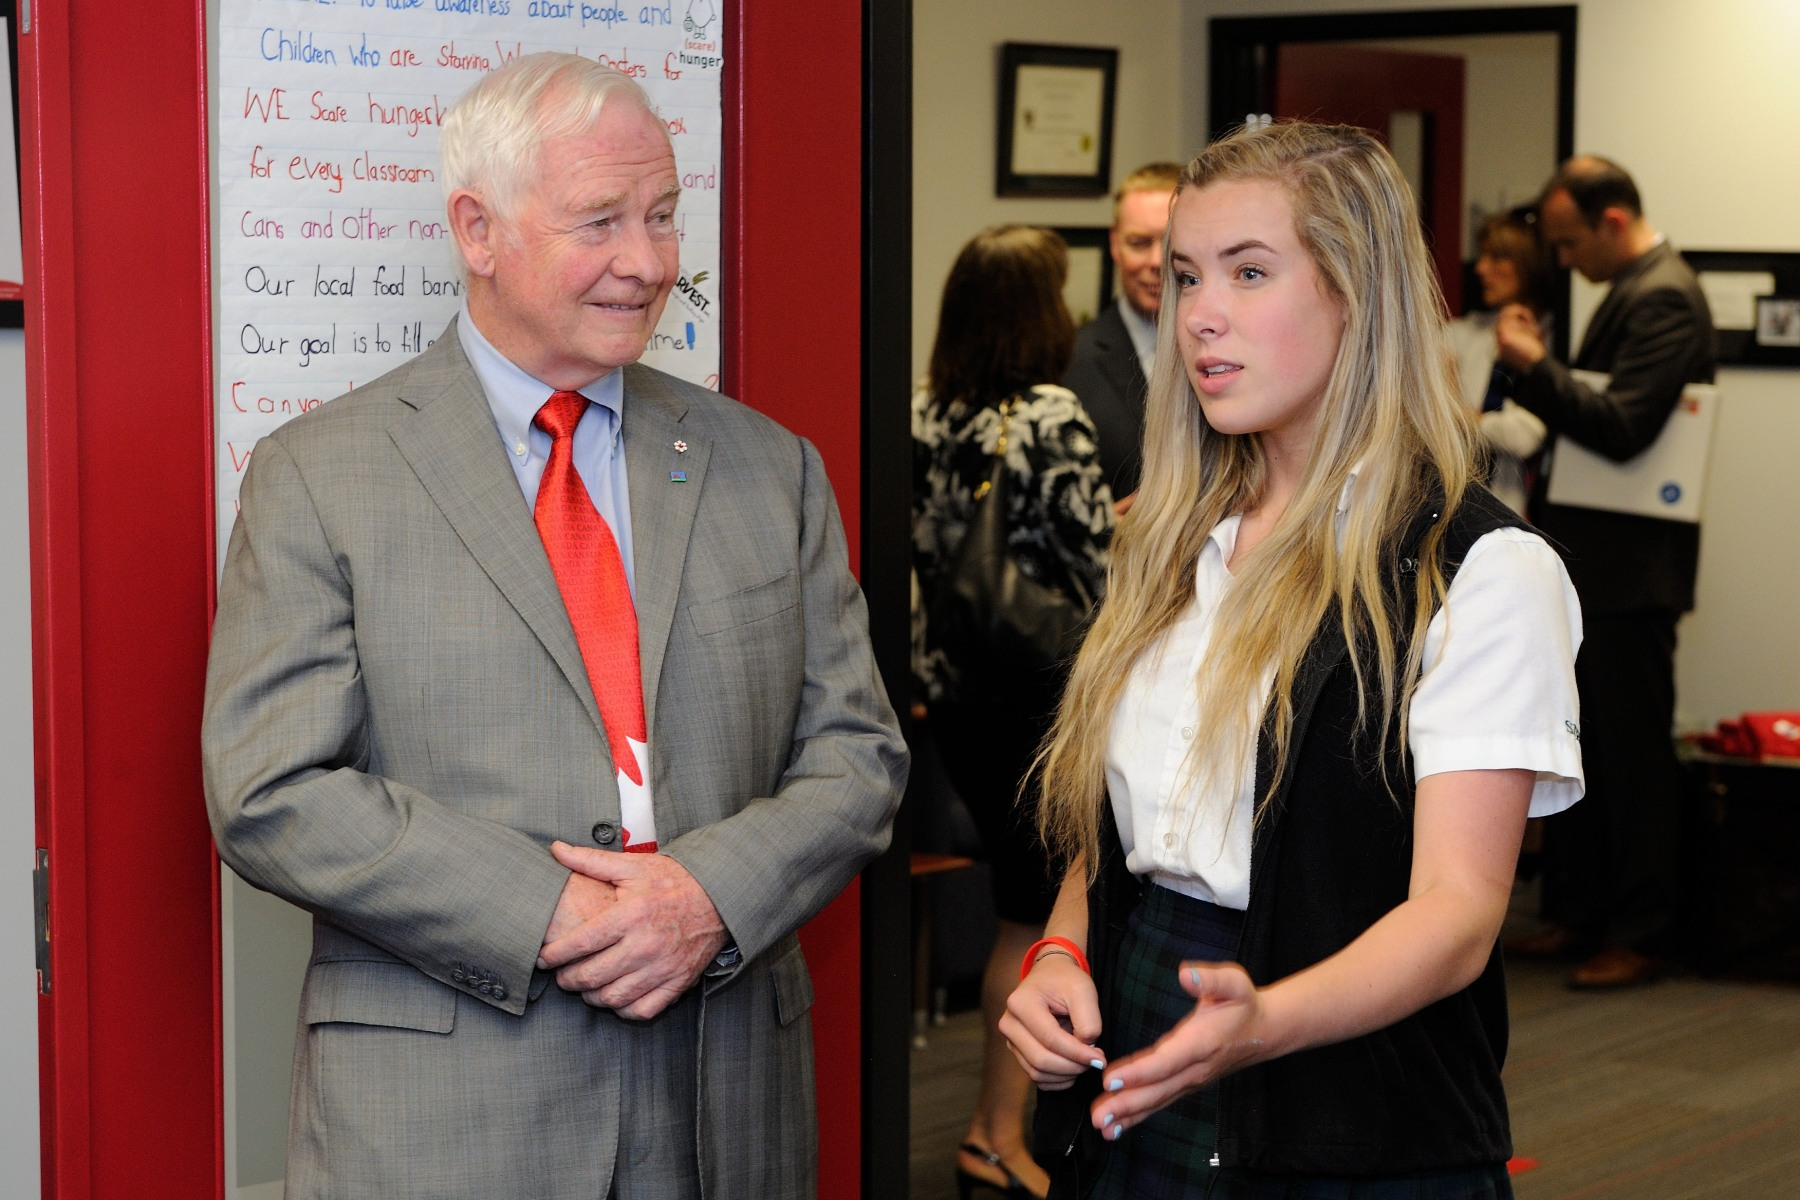 Later on, His Excellency visited the office of The Ladybug Foundation and met with its founder, Miss Hannah Taylor.